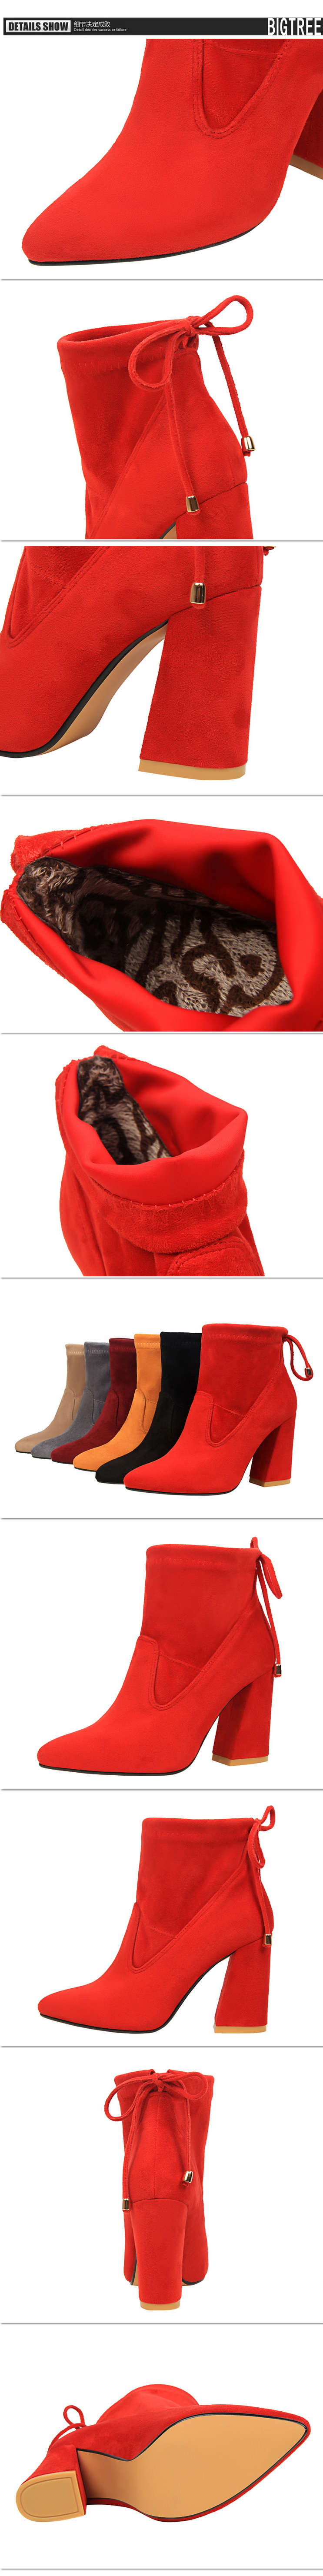 Winter Autumn New Thin High Heels Pumps Women Fashion Boots Shoes Elegant Sexy Comfortable Ankle Boot Shoes Black SMYDS-A1004